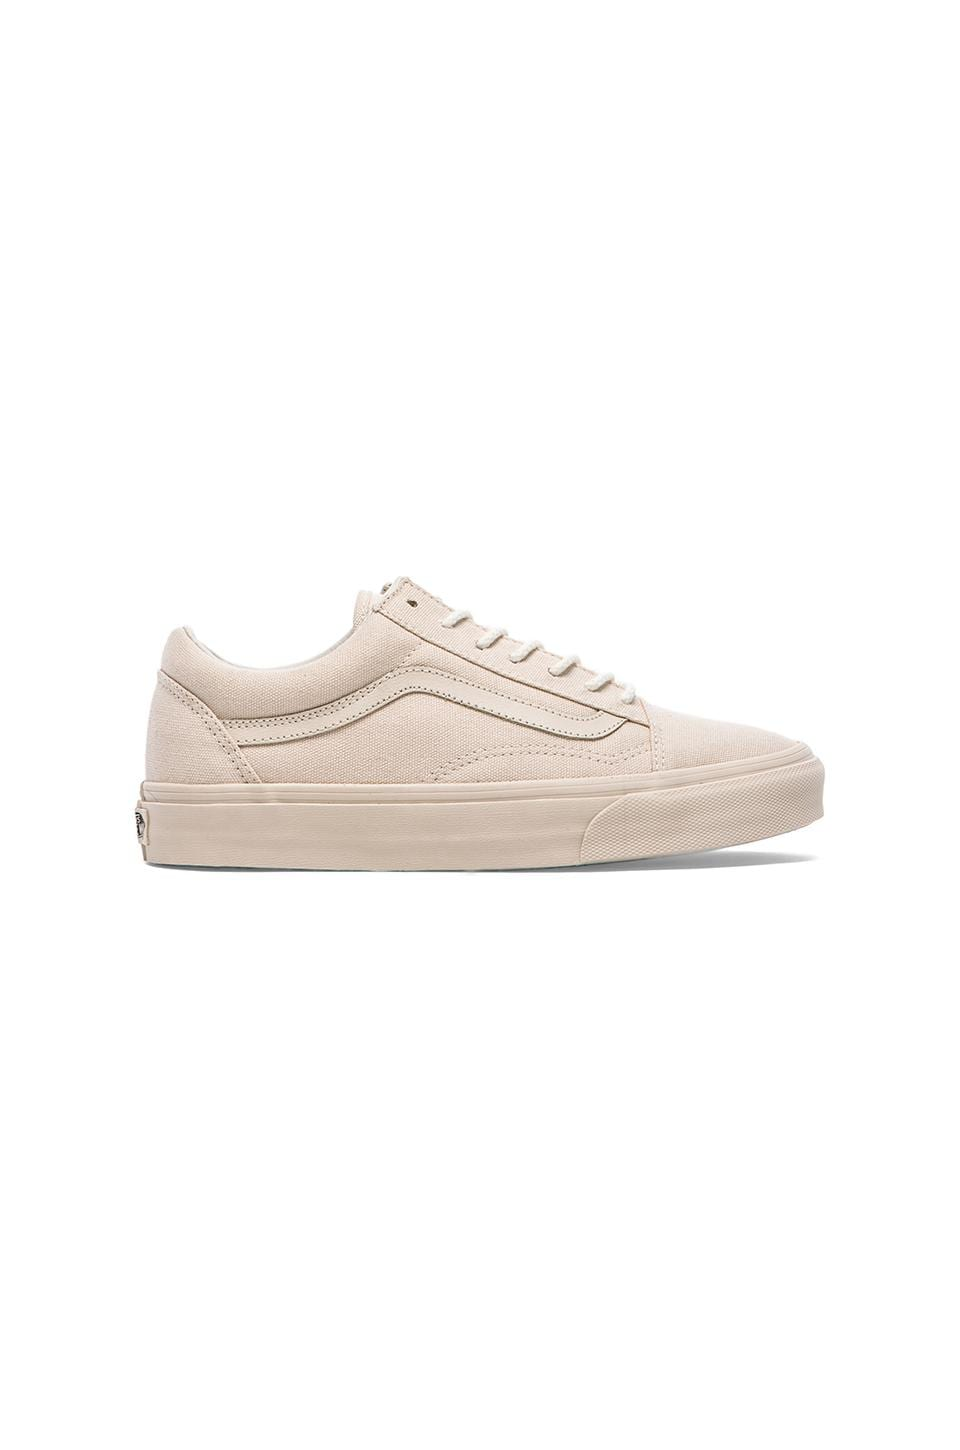 Vans California Old Skool Reissue in Birch